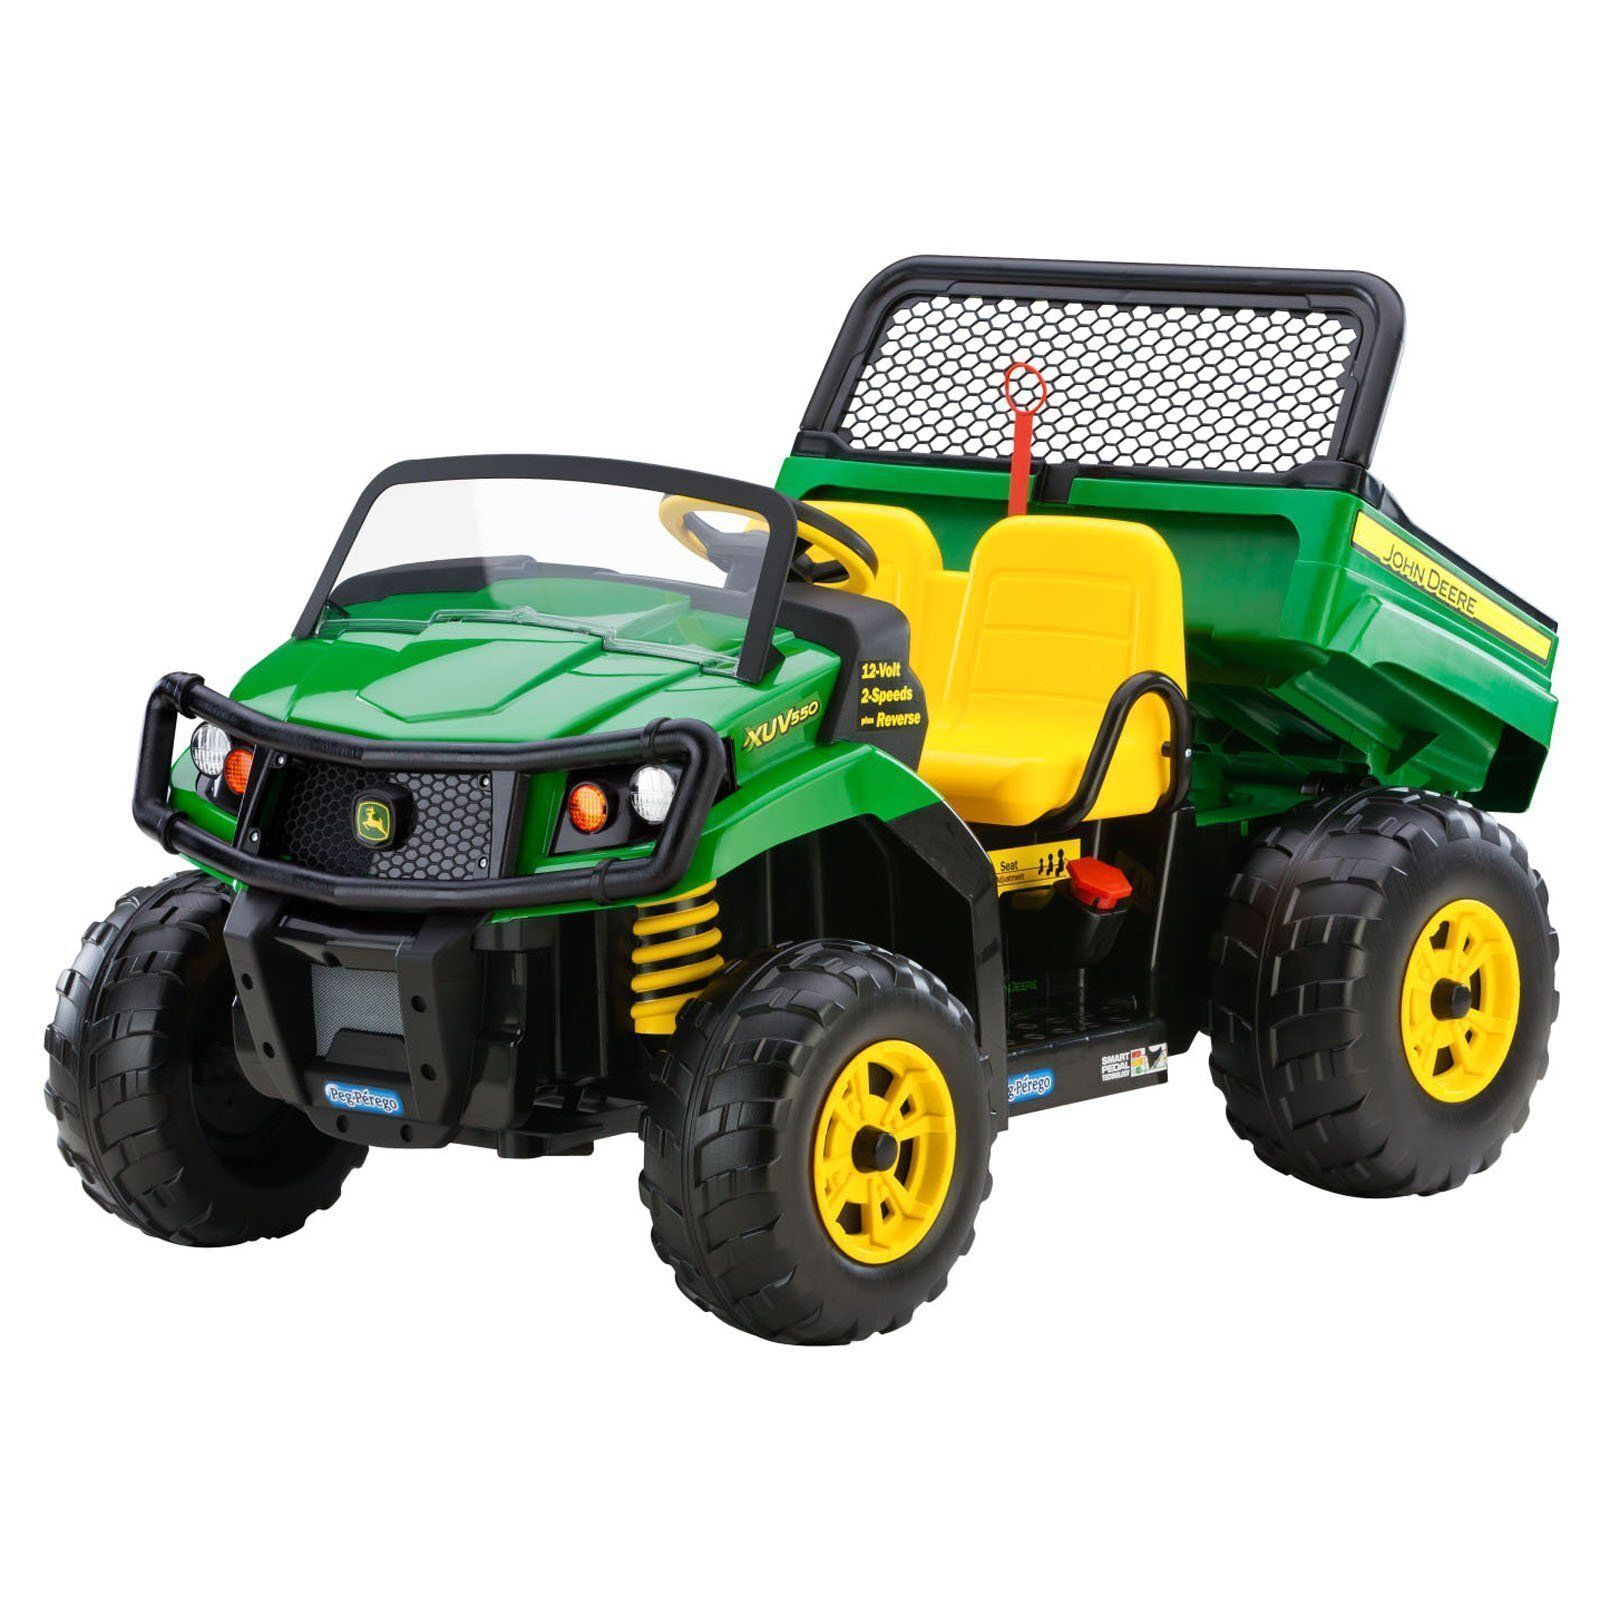 Peg Perego John Deere Gator XUV 12 Volt Battery powered Ride on Car